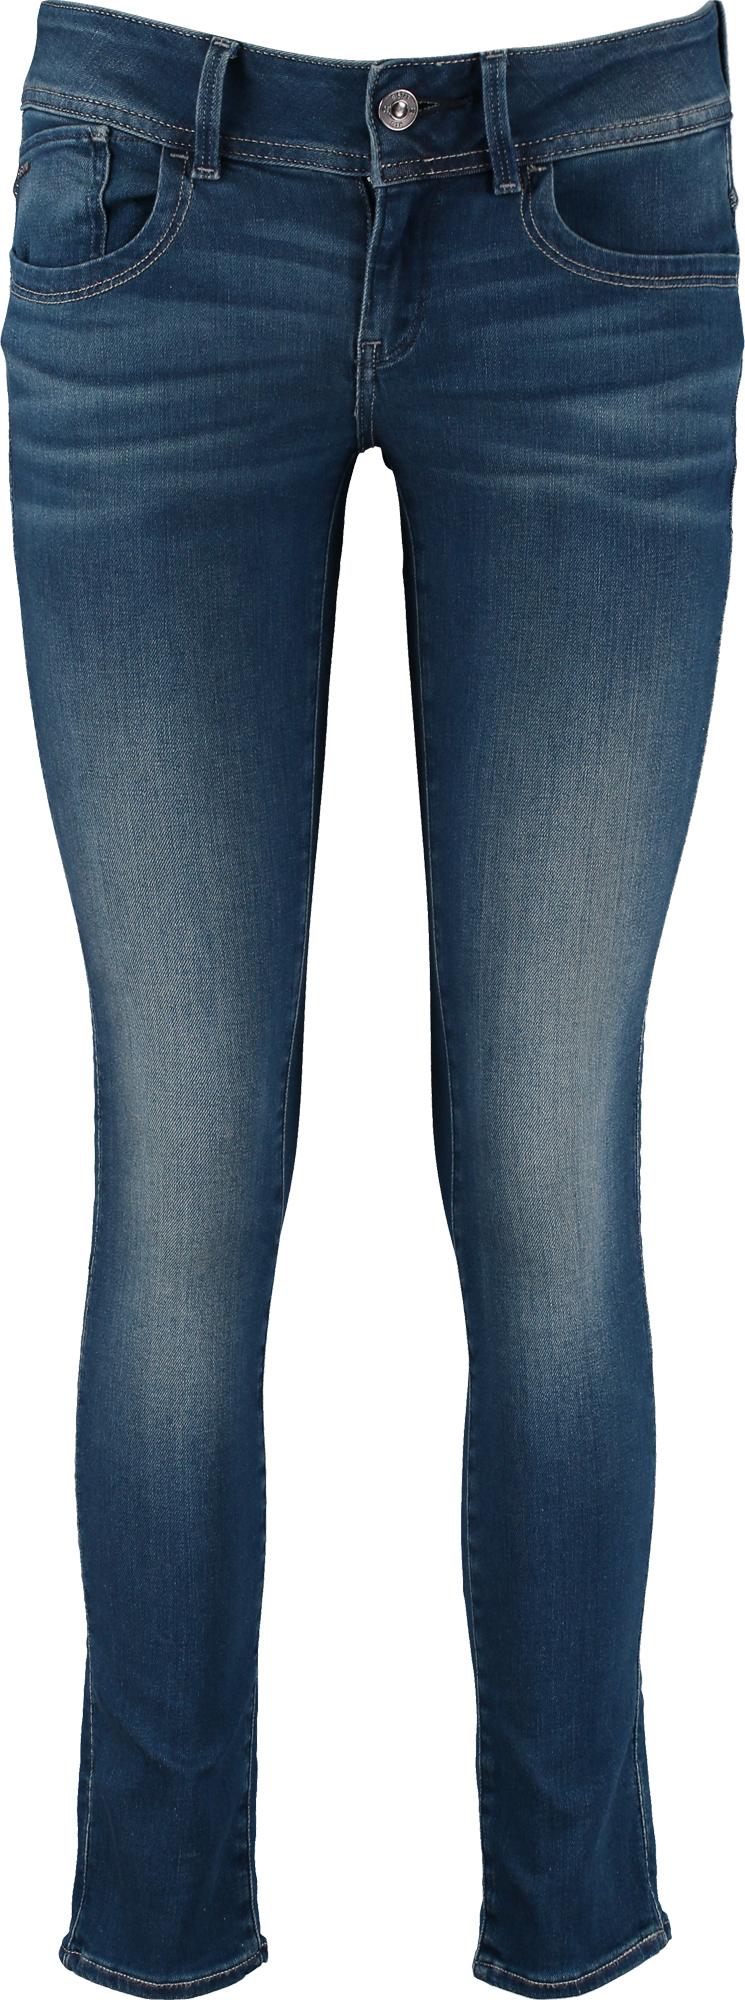 Piet Zoomers G Star dames jeans